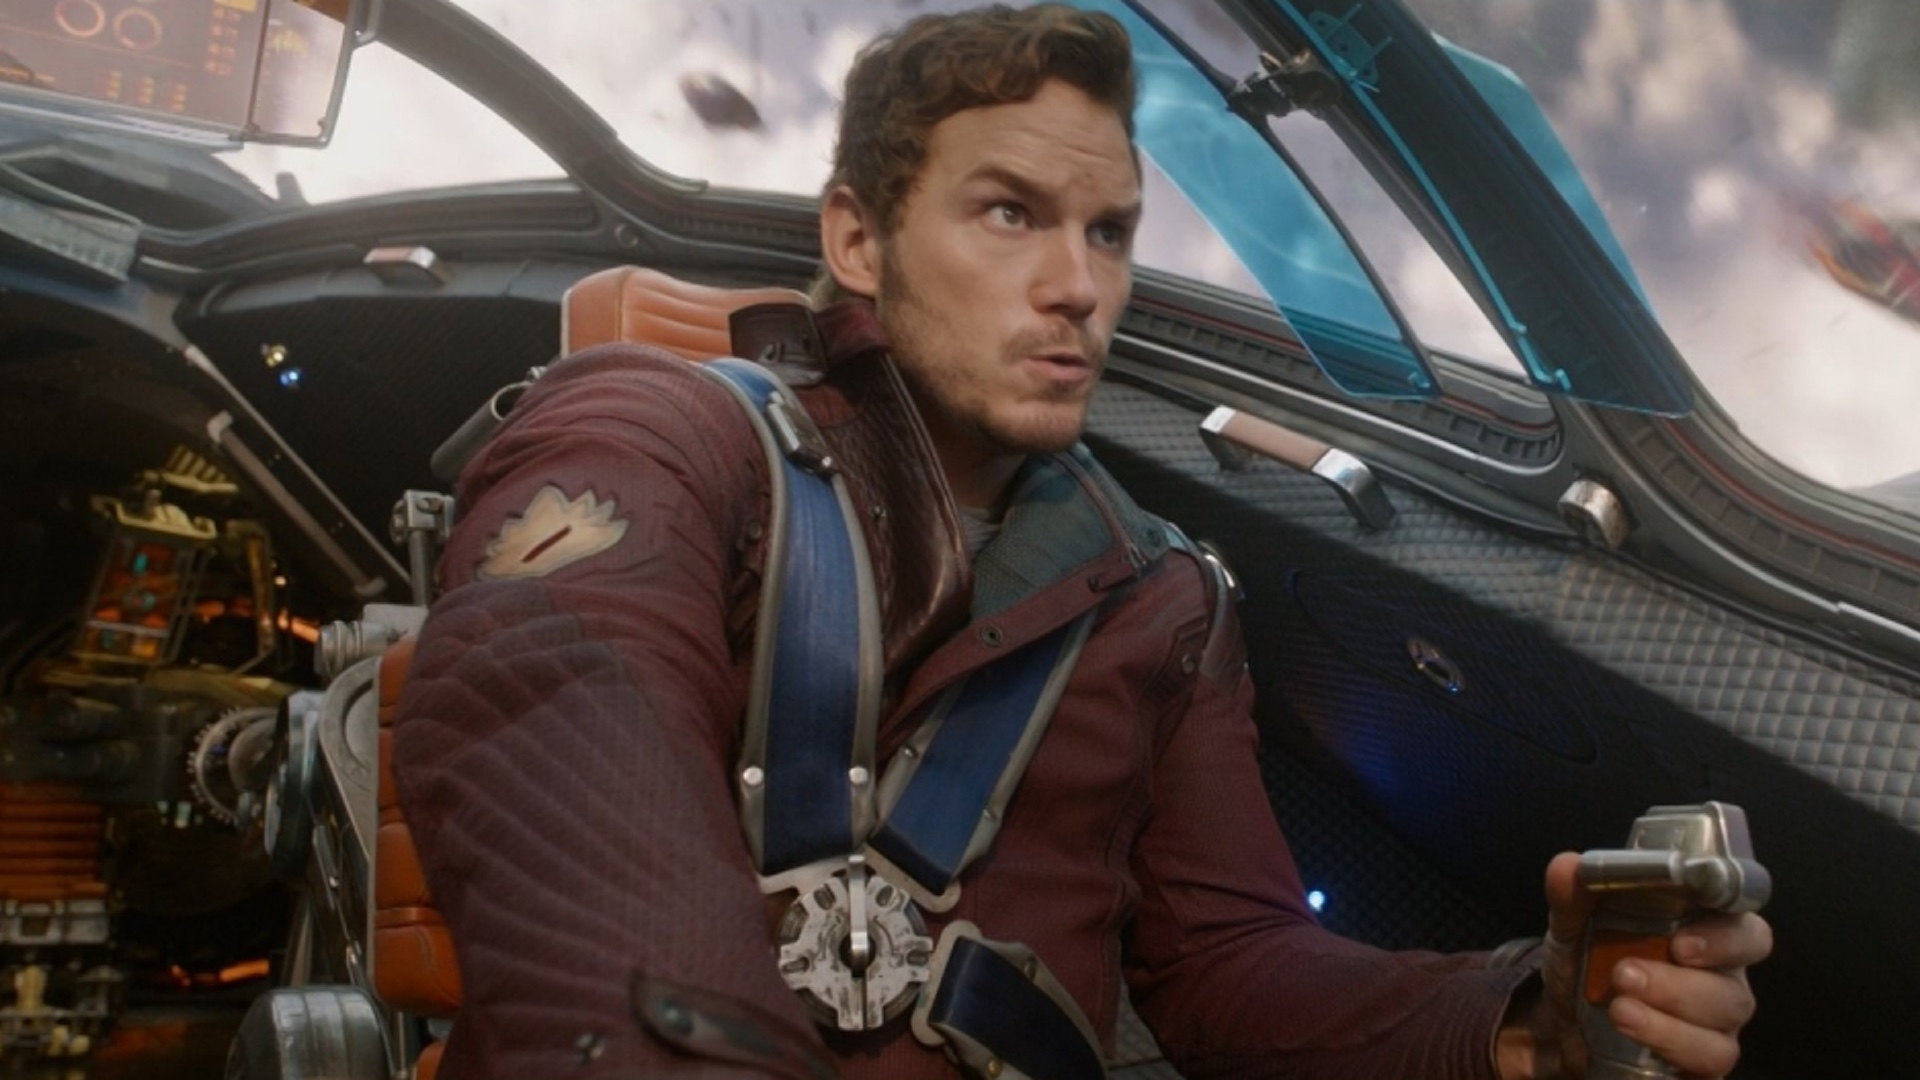 star-lord-rumored-to-have-a-major-role-in-avengers-infinity-war1